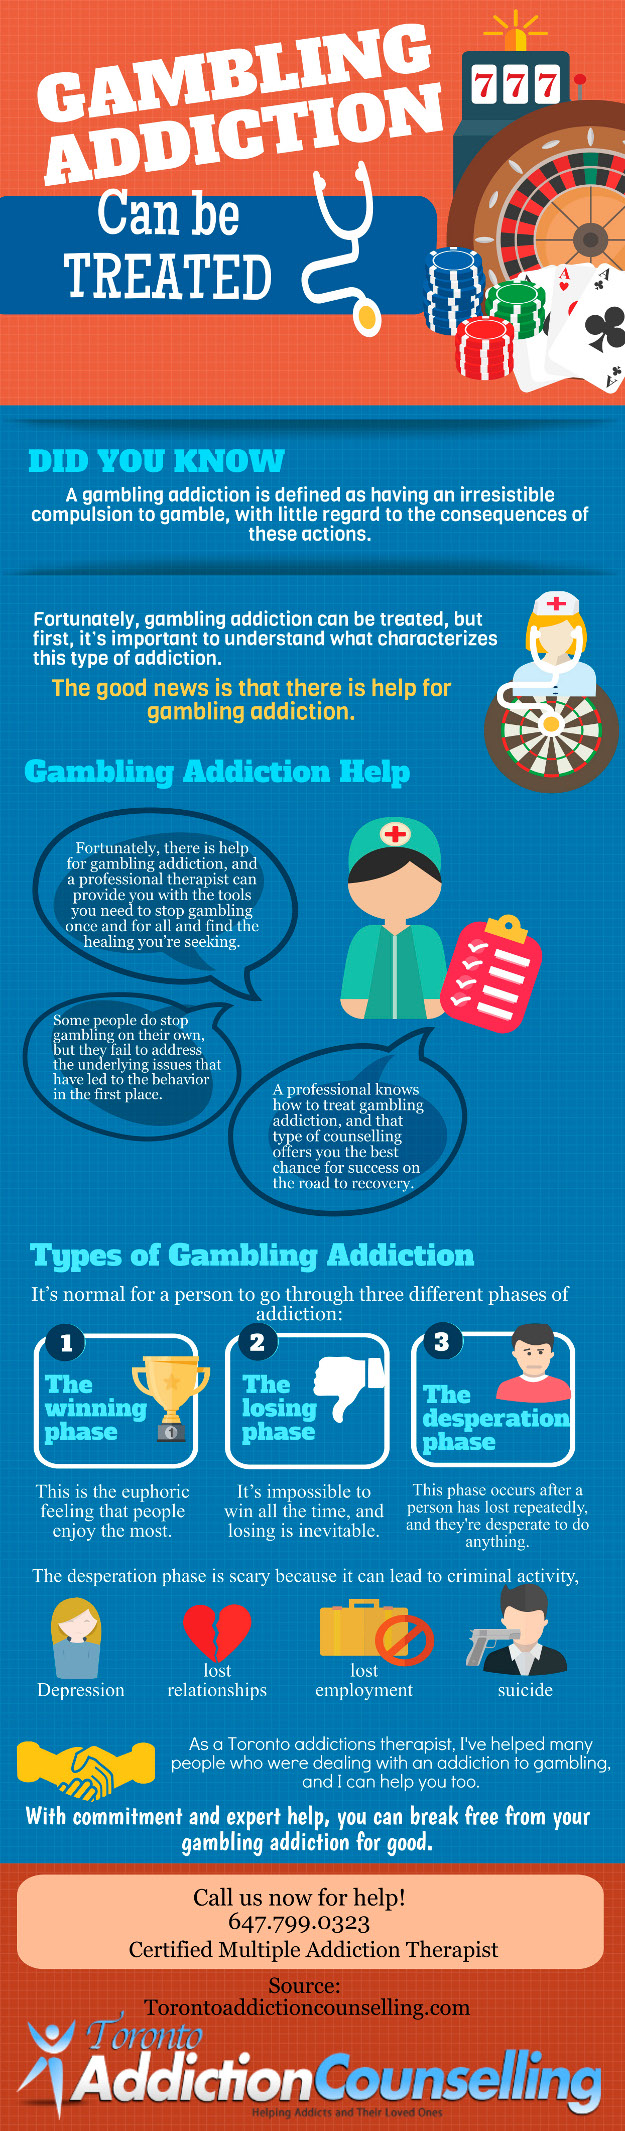 Gambling Addiction Treatment in Toronto | Find Help for ...